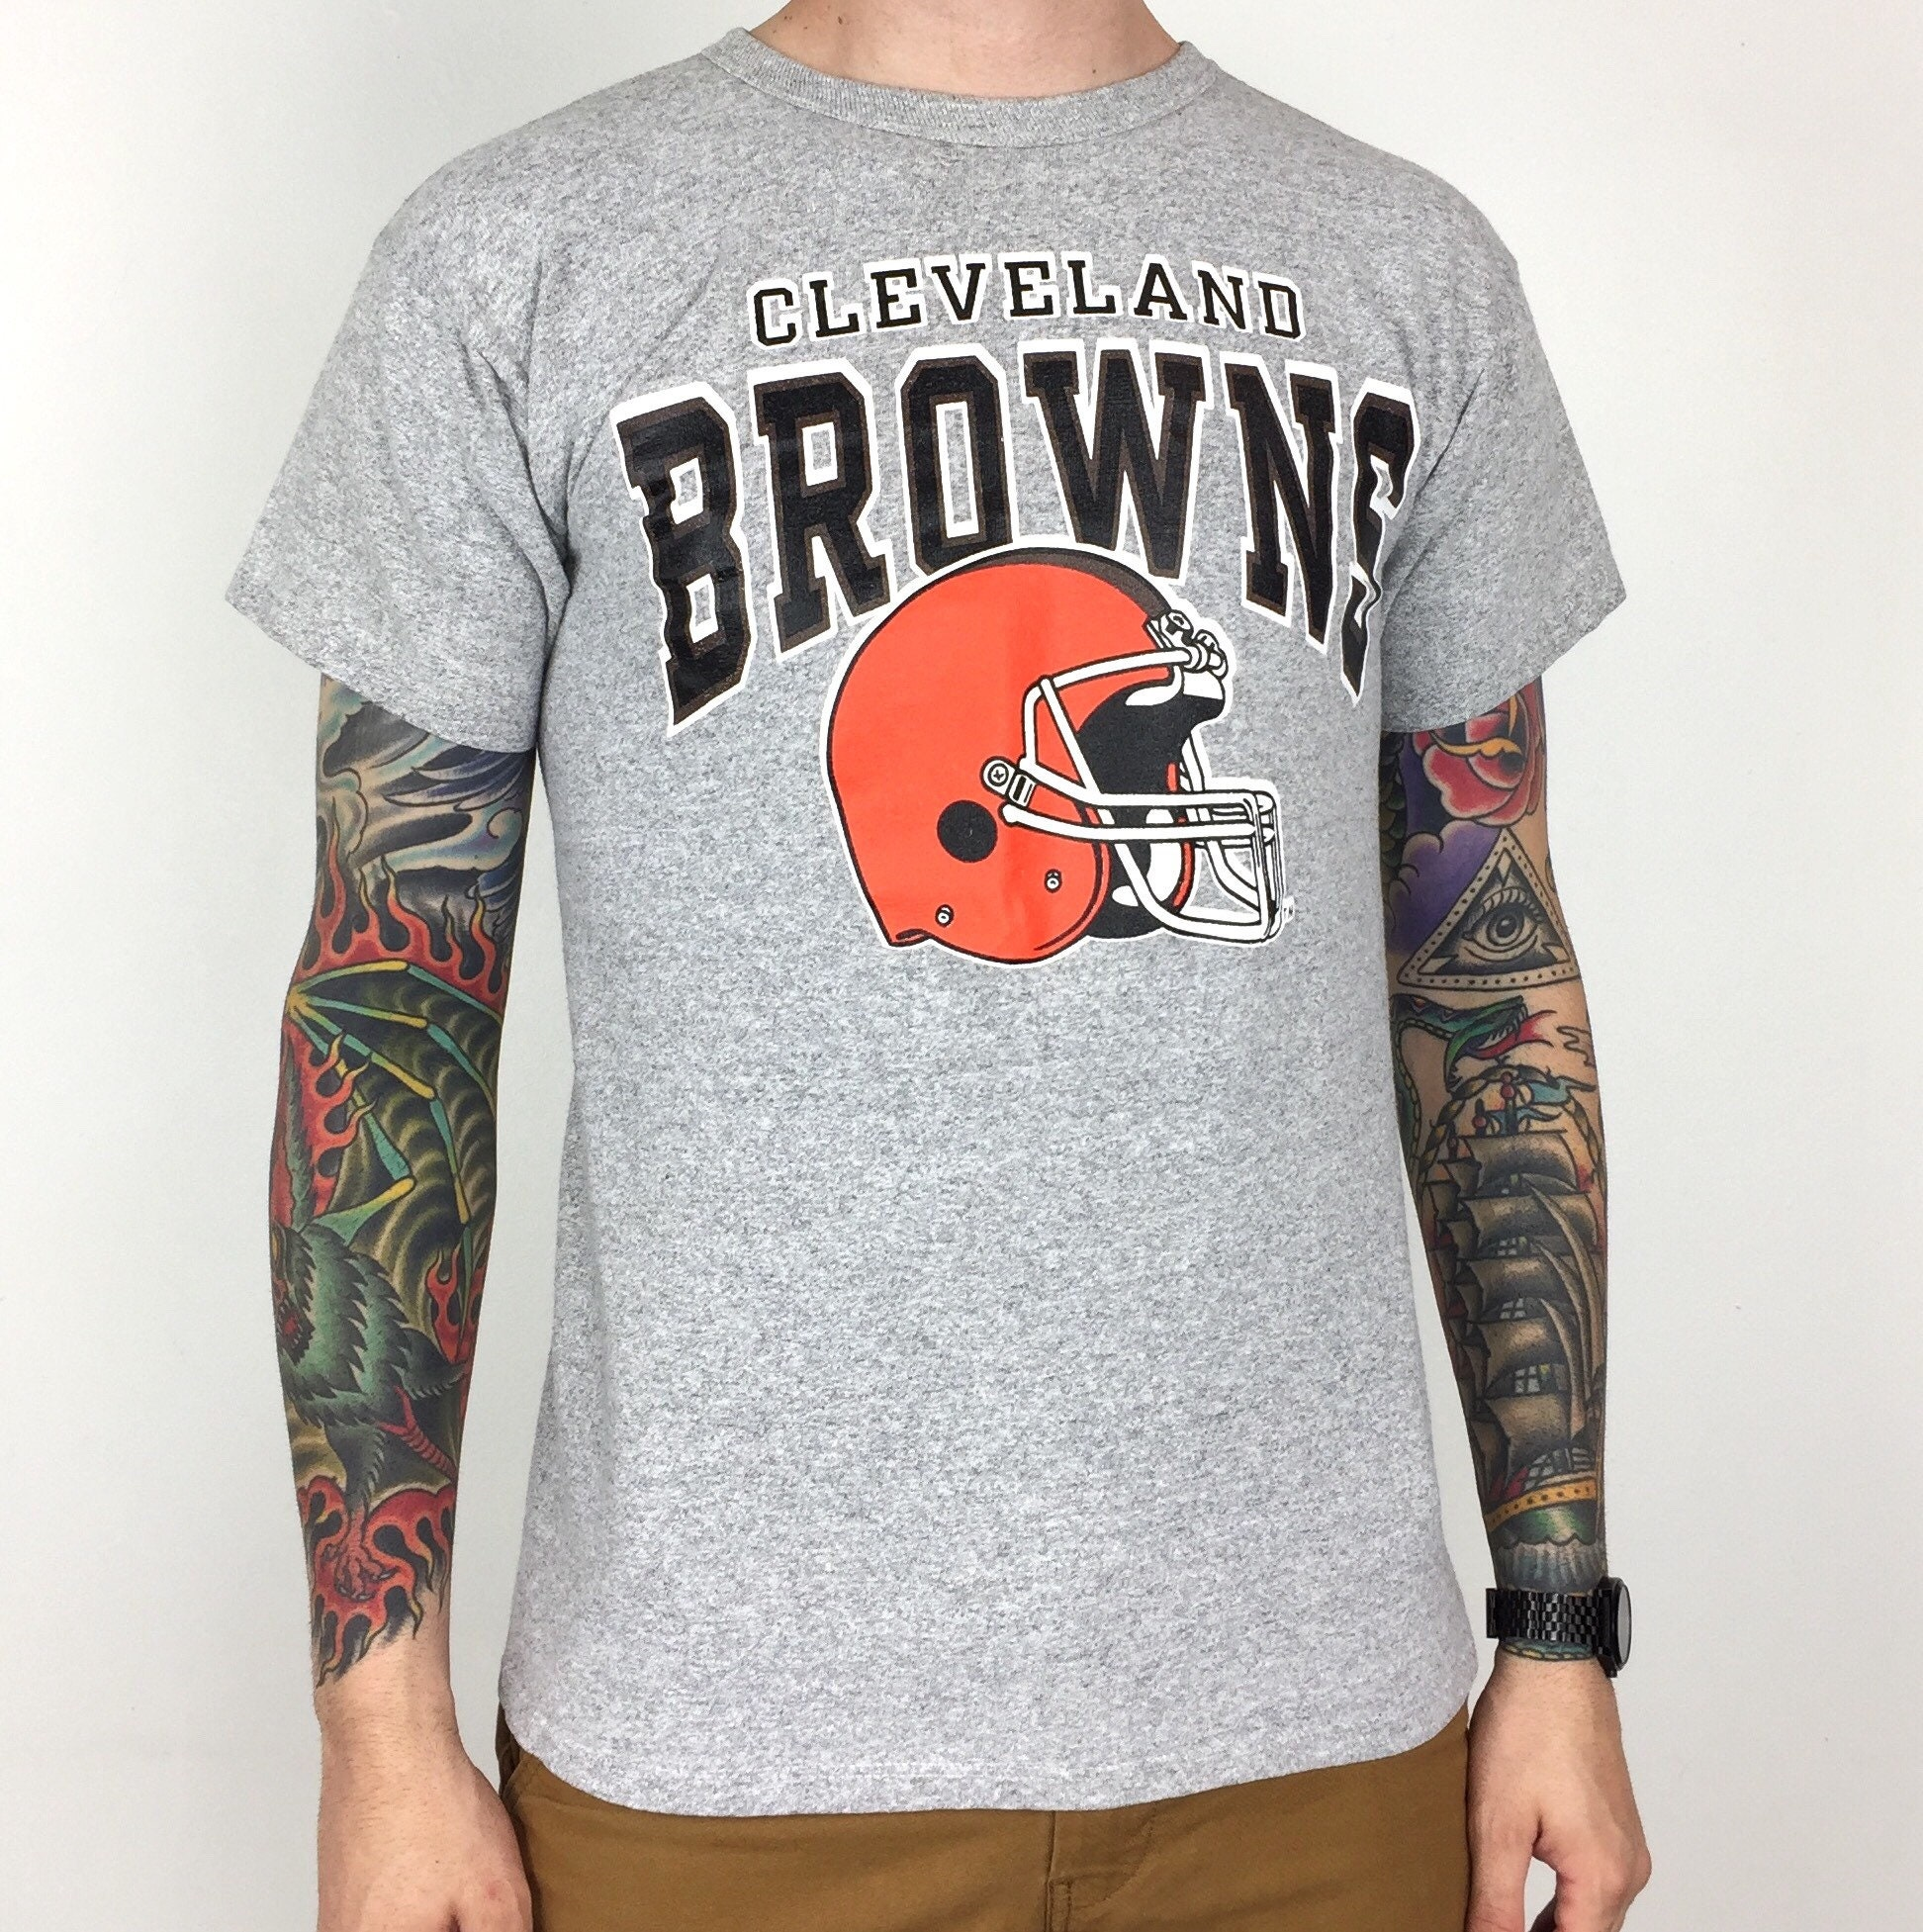 65d84d0f9 Vintage 80s Champion NFL Cleveland Browns Made in USA heather grey single  stitch football graphic tee t-shirt shirt - Size M